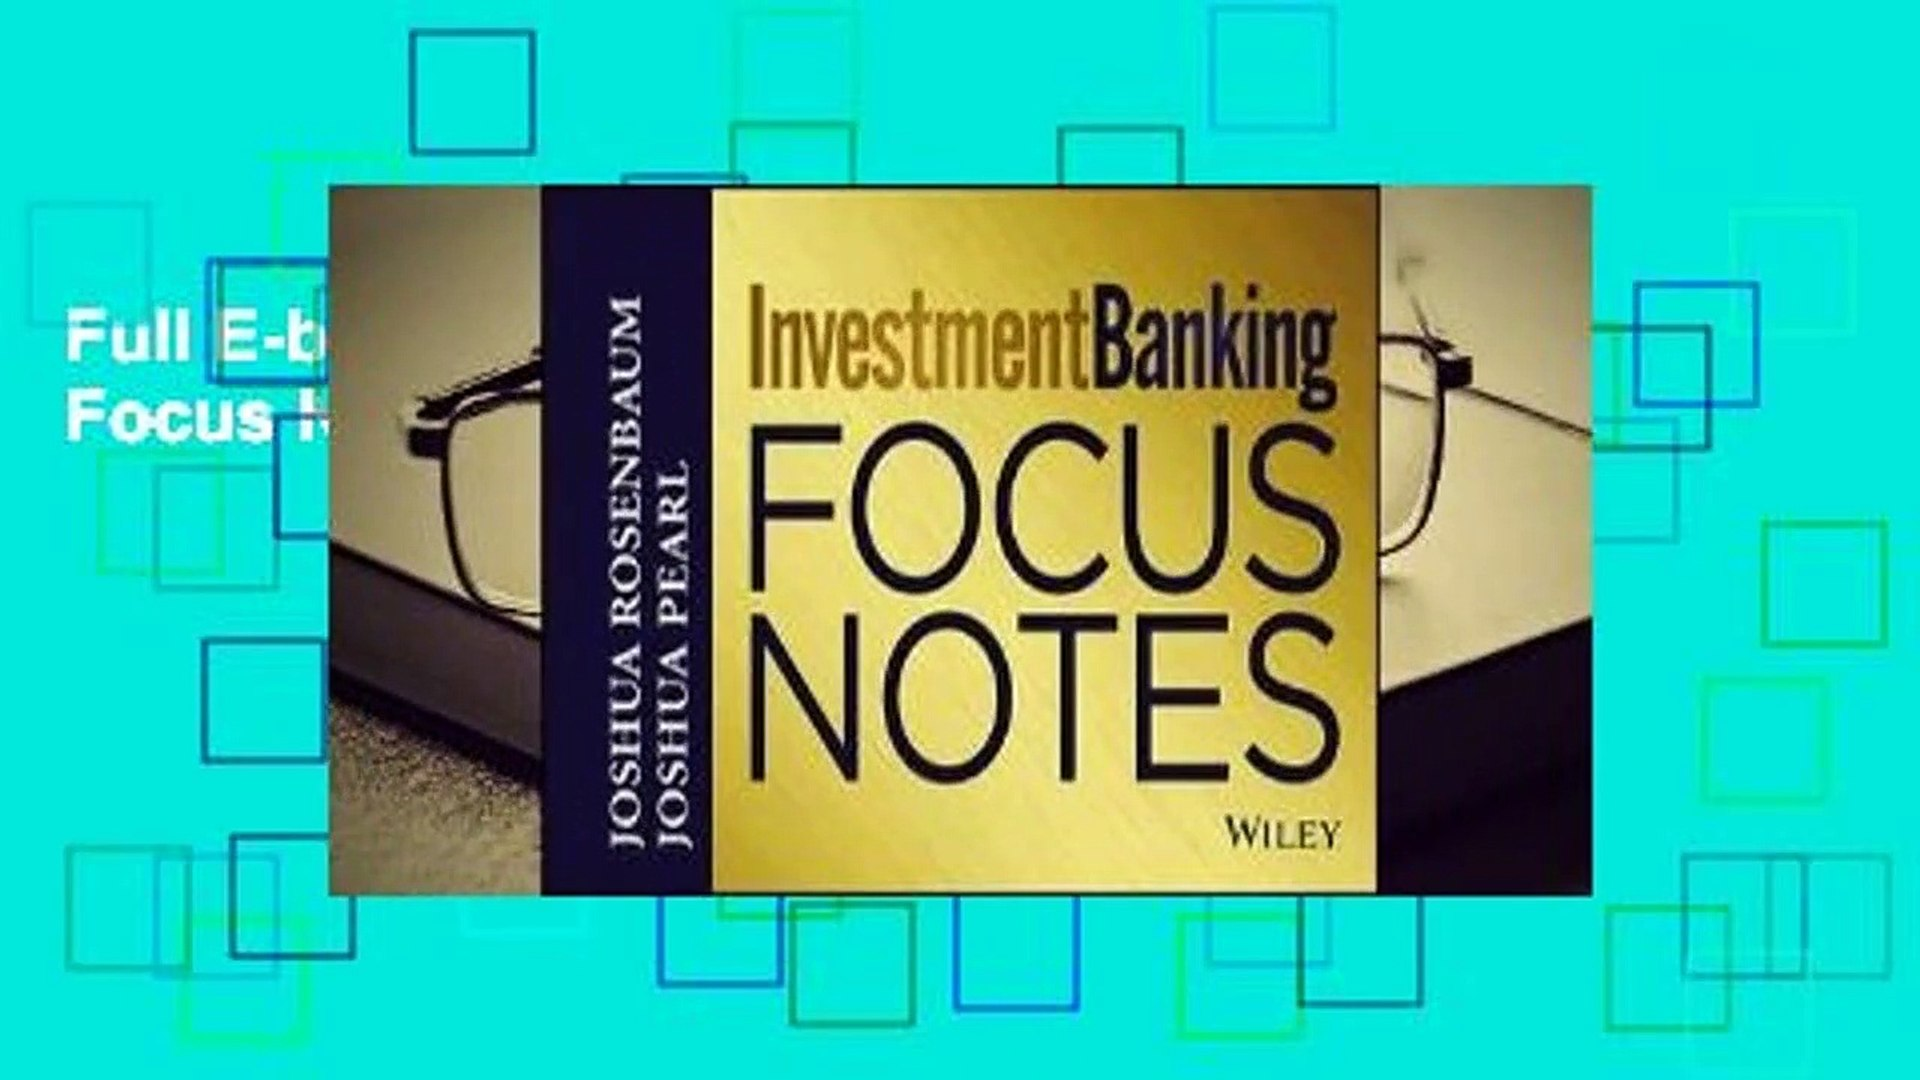 Full E-book Investment Banking Focus Notes  For Online